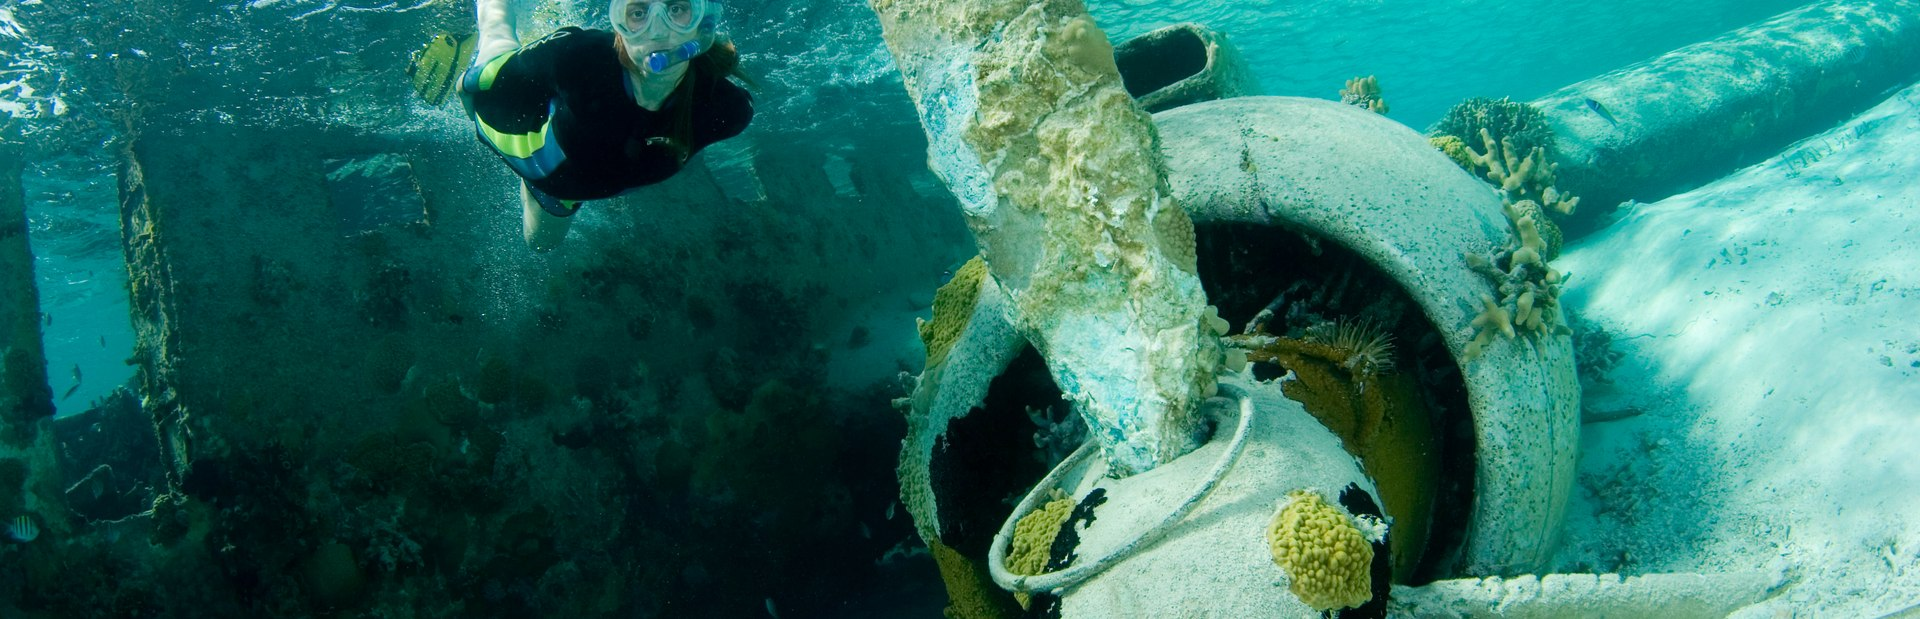 The Staniel Cay Plane Wreck Image 1